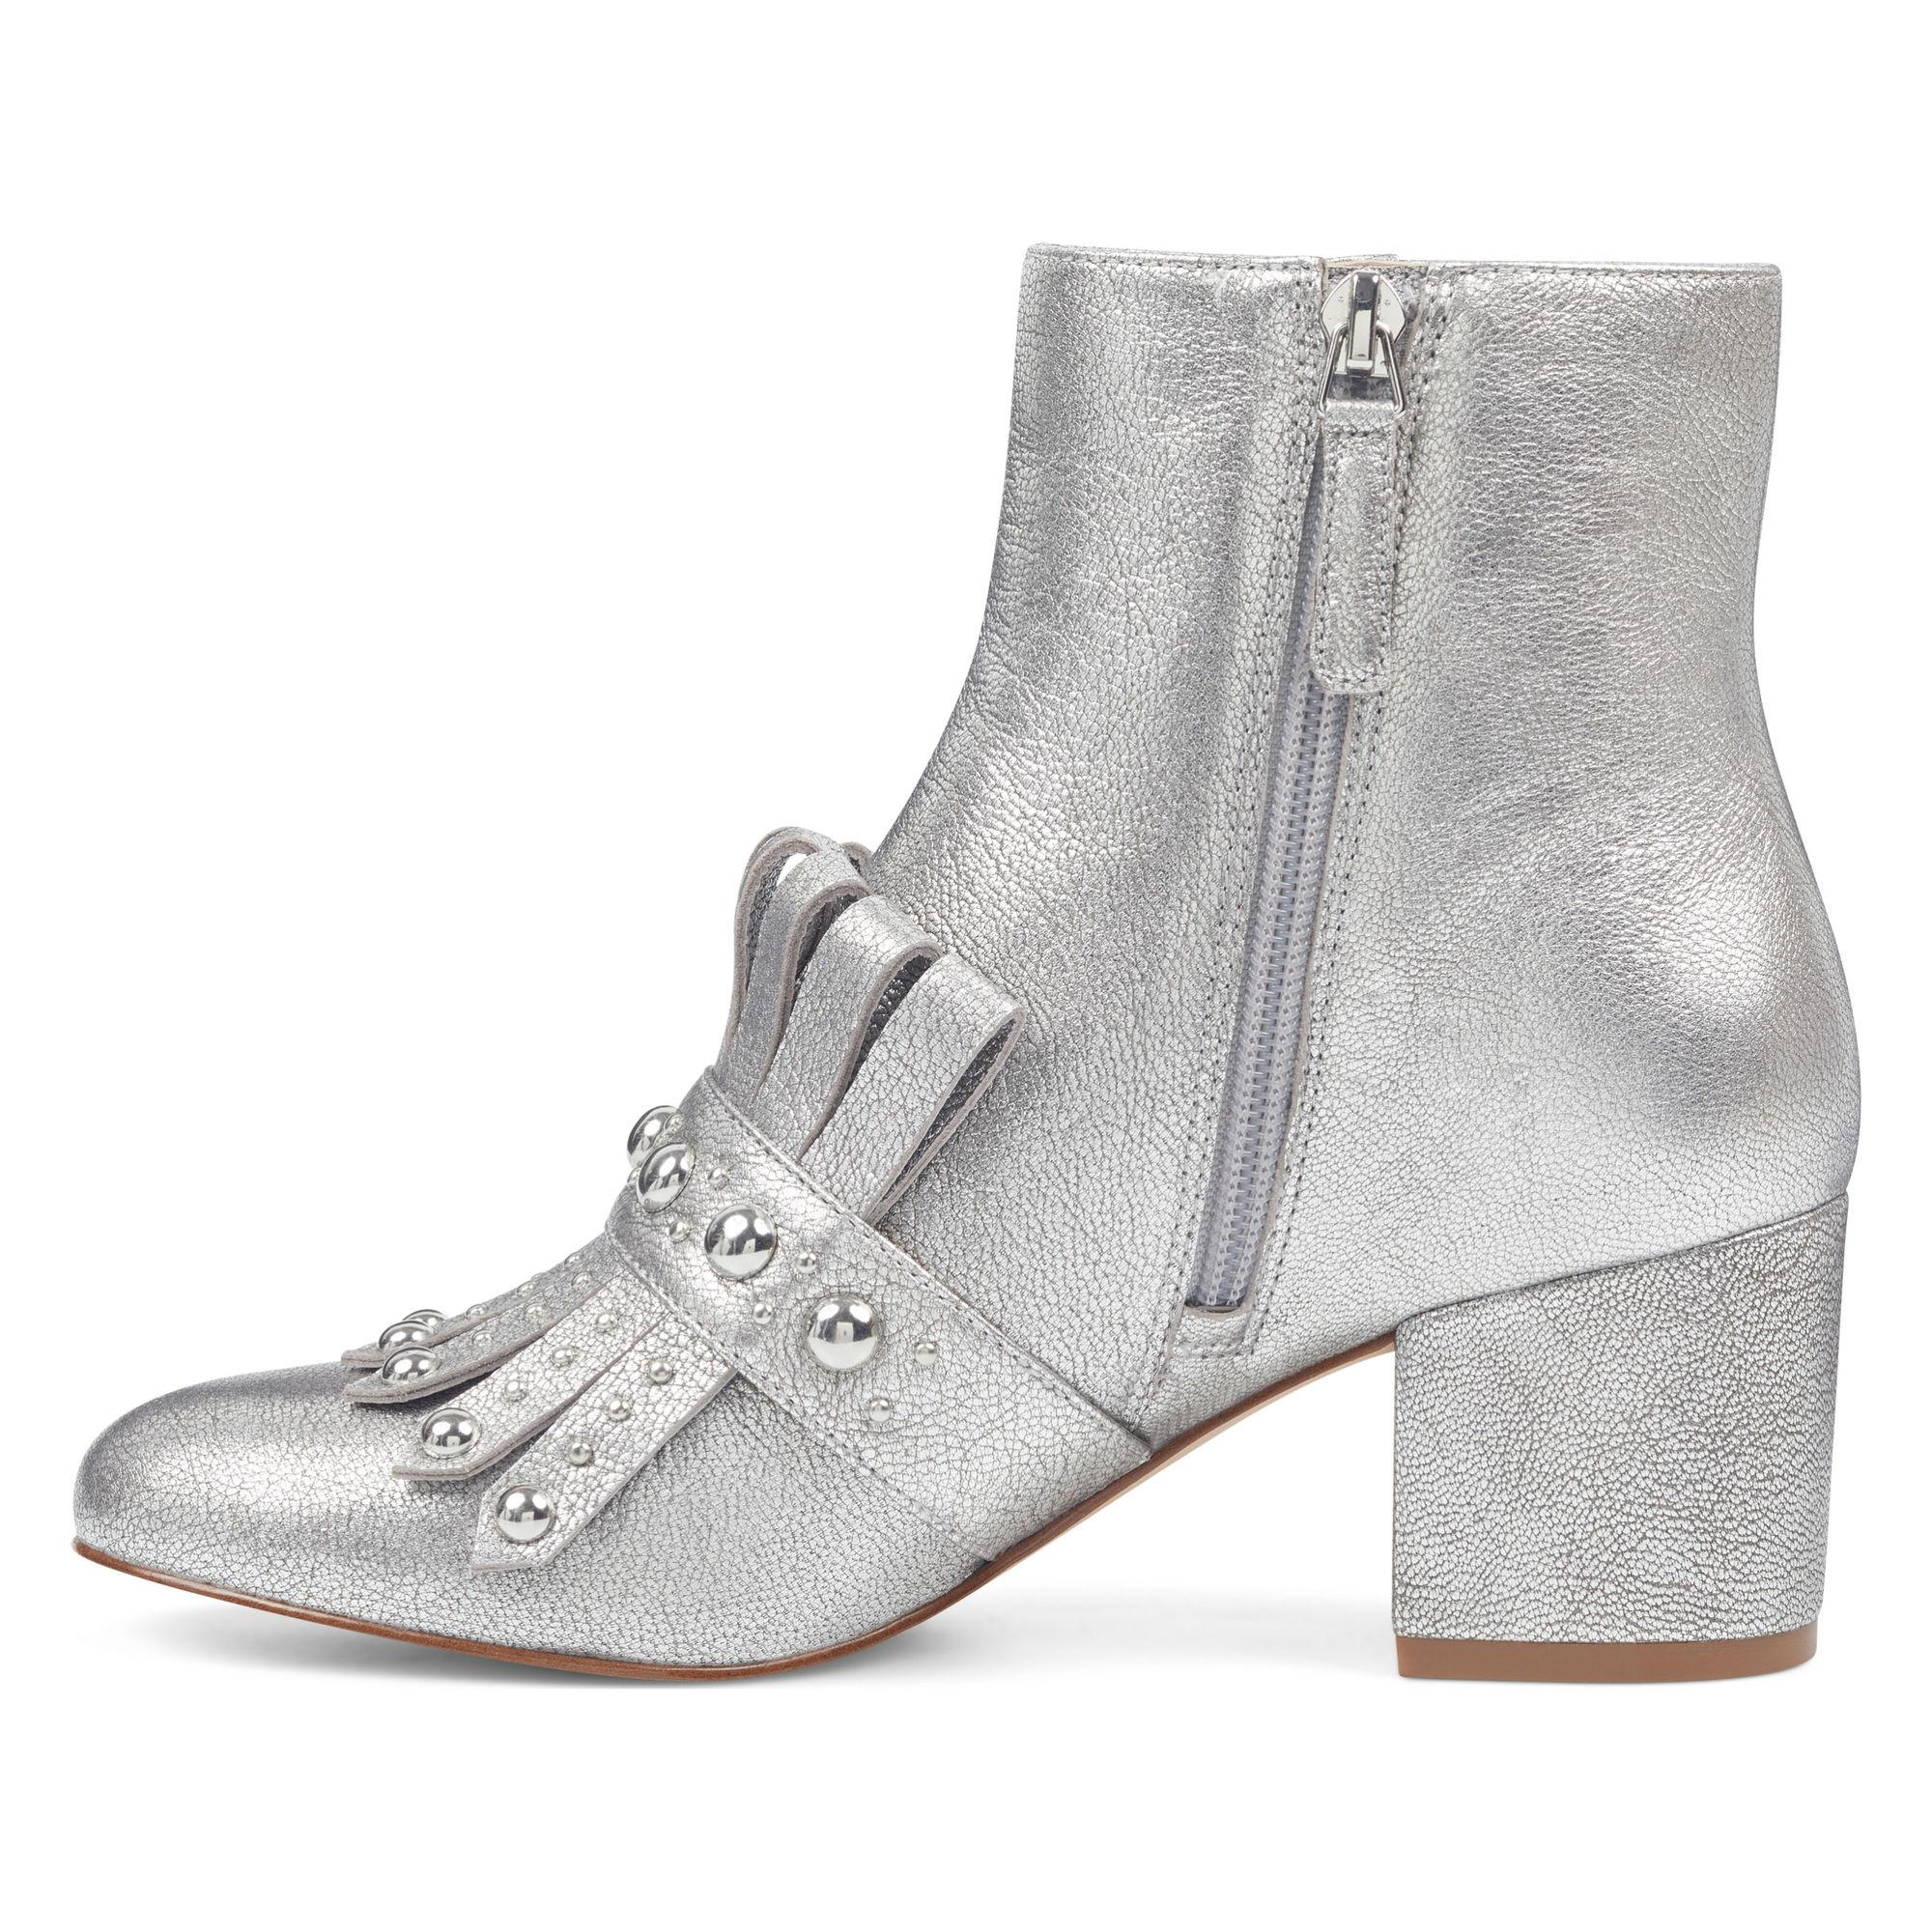 Nine West Leather Qamile Booties in